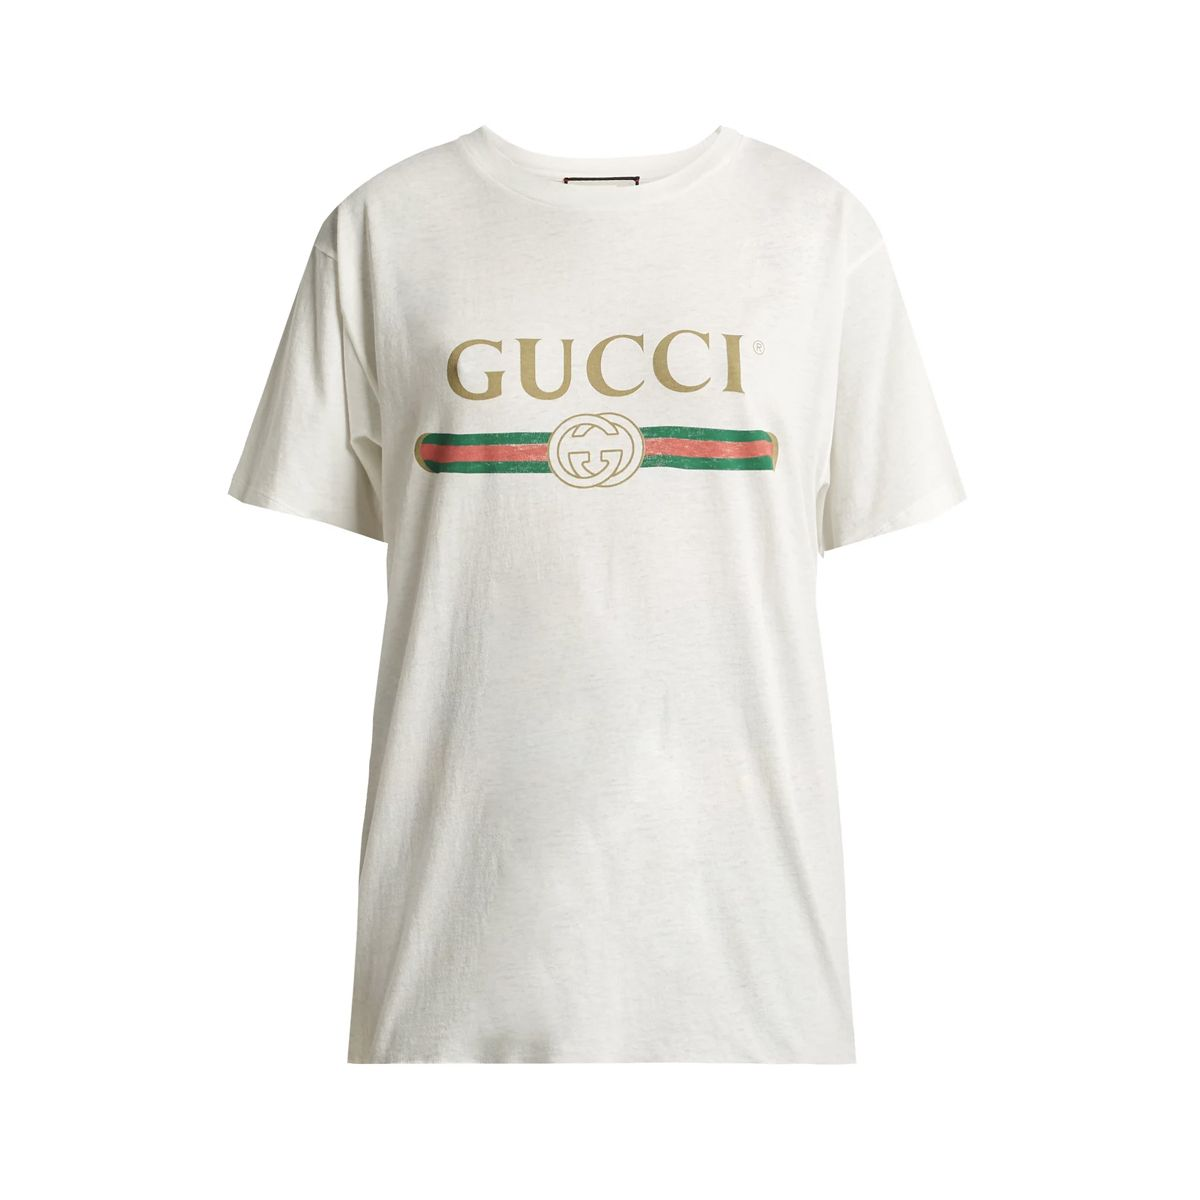 undefined 265463 1534424721854 product.1200x1200uc - 10 Extra Inexpensive Methods to Add Gucci Into Your Wardrobe